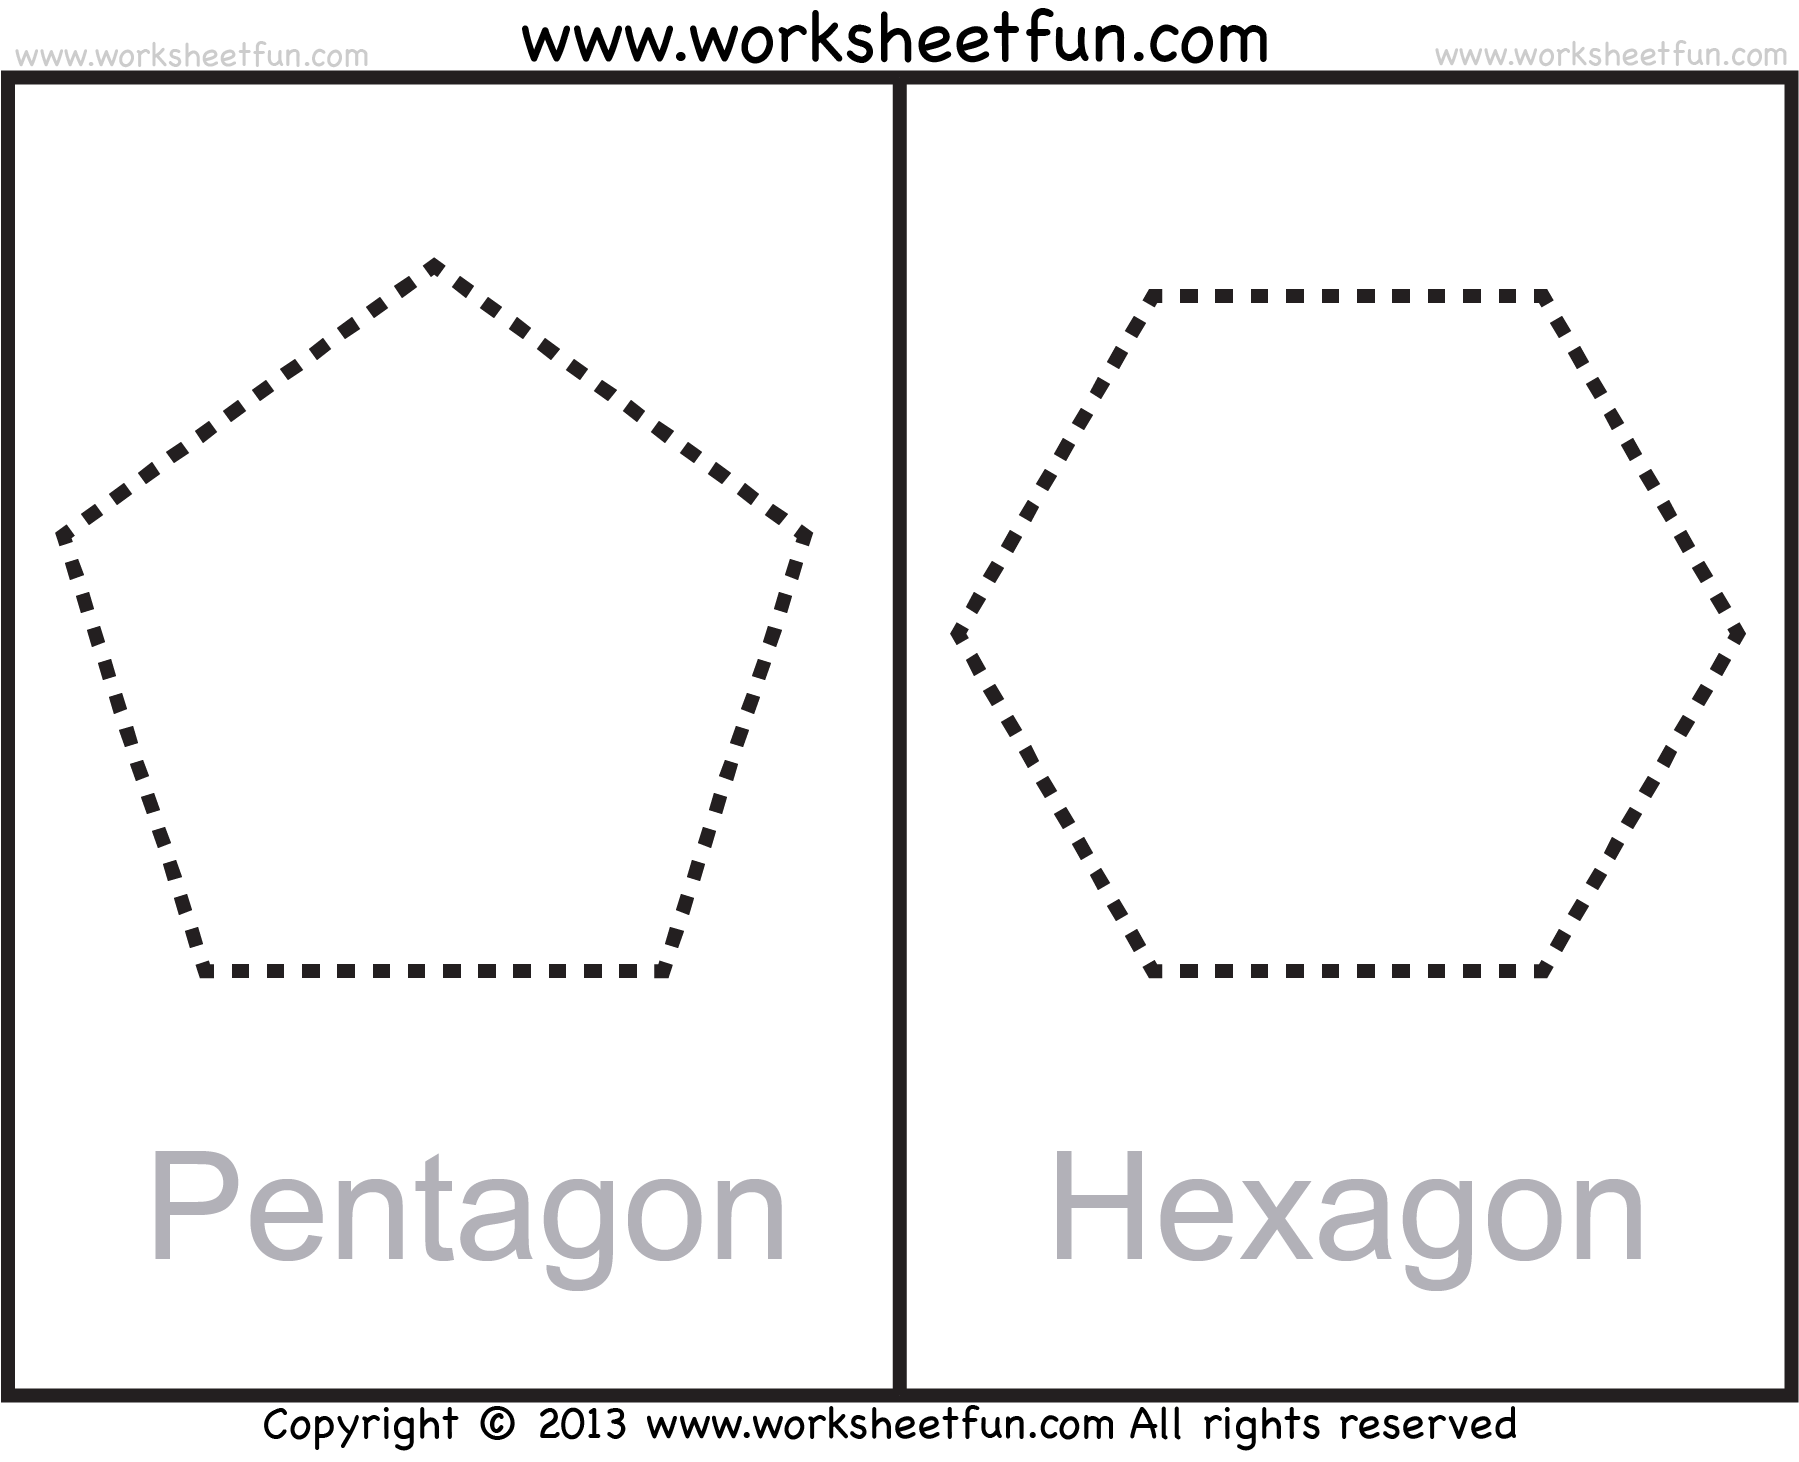 Shapes Polygons Pentagon Hexagon Heptagon Octagon